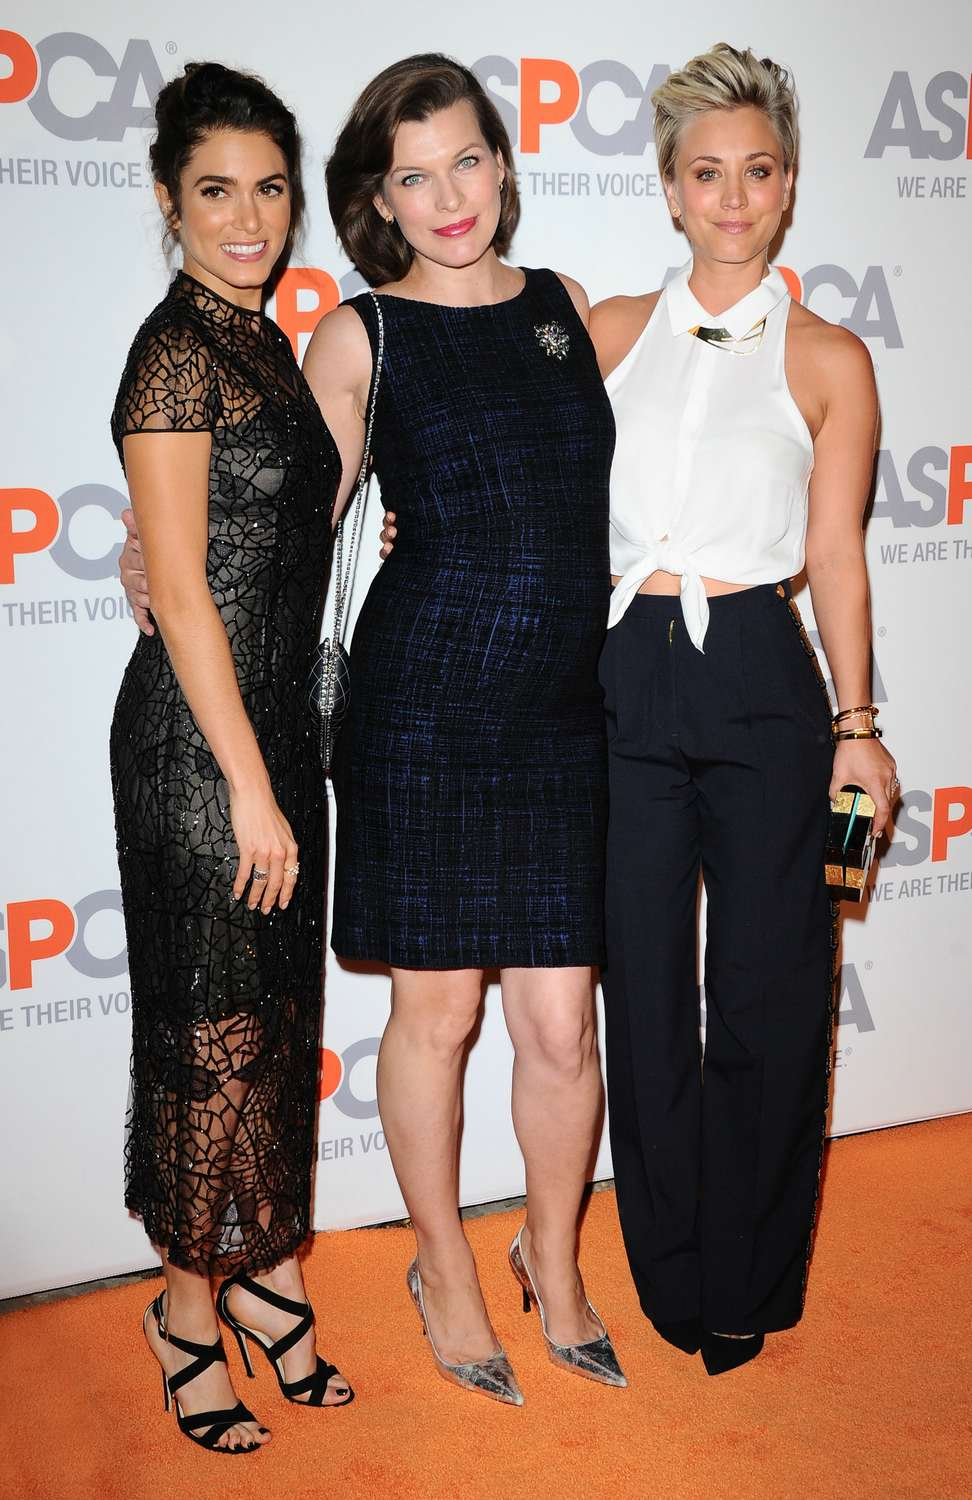 Nikki Reed, Kaley Cuoco and Milla Jovovich arrive the ASPCA Passion Awards 2014 on October 22, 2014